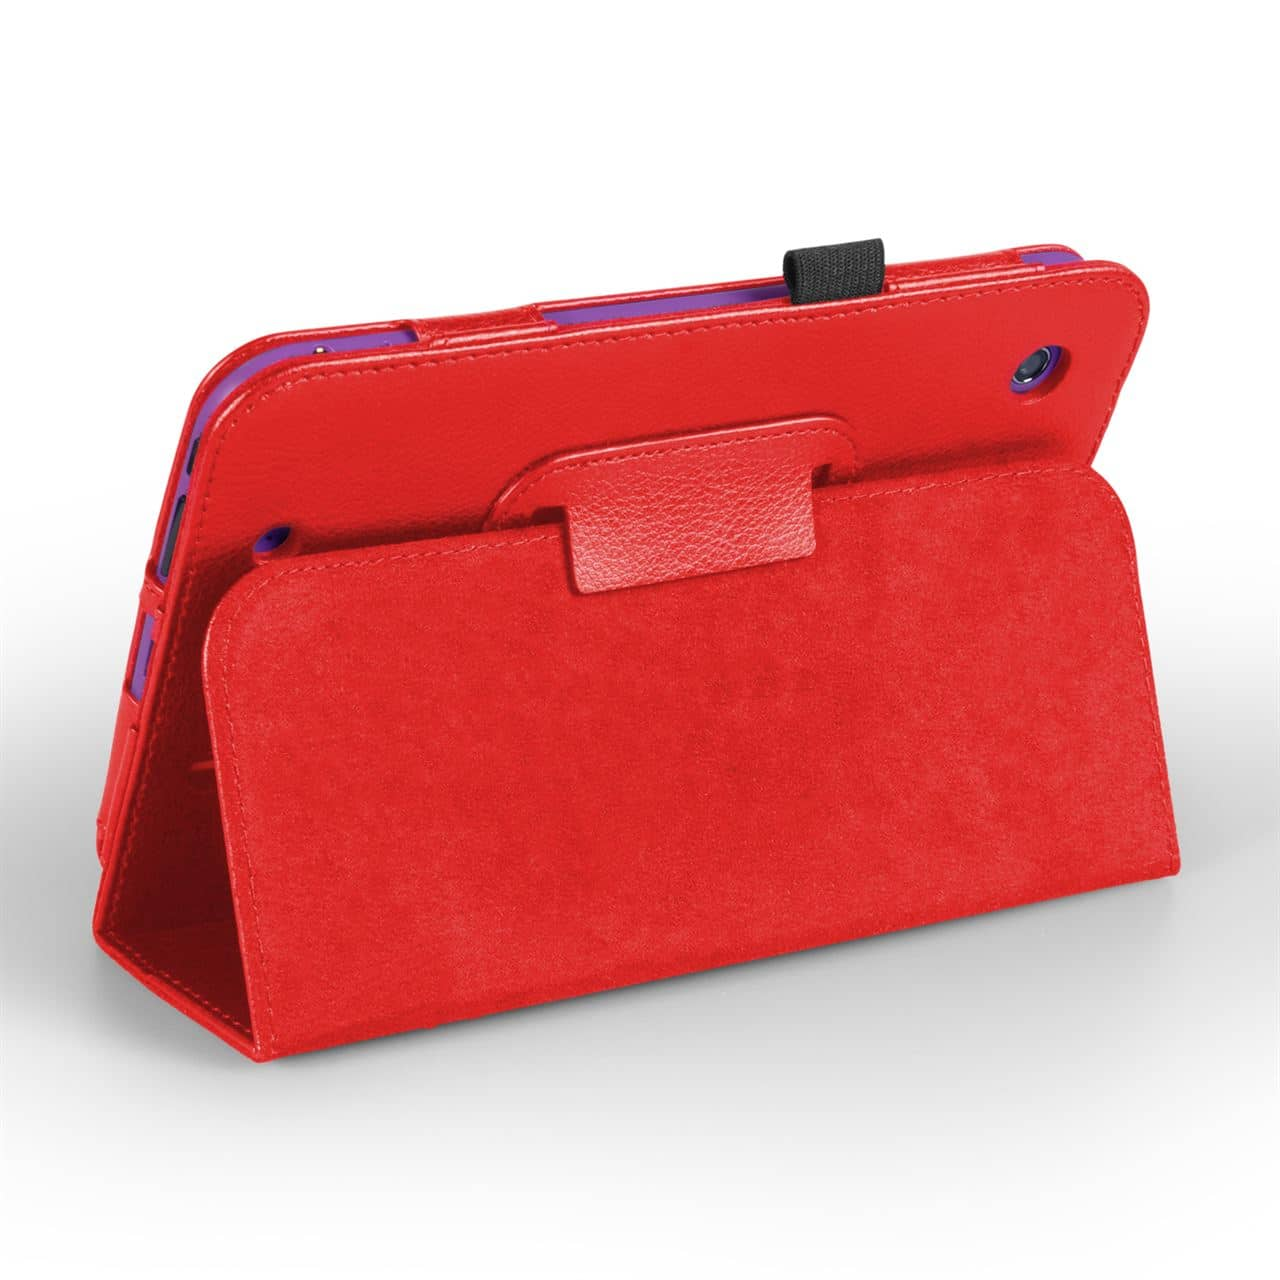 0013506_caseflex-hudl-7-textured-faux-leather-stand-case-red